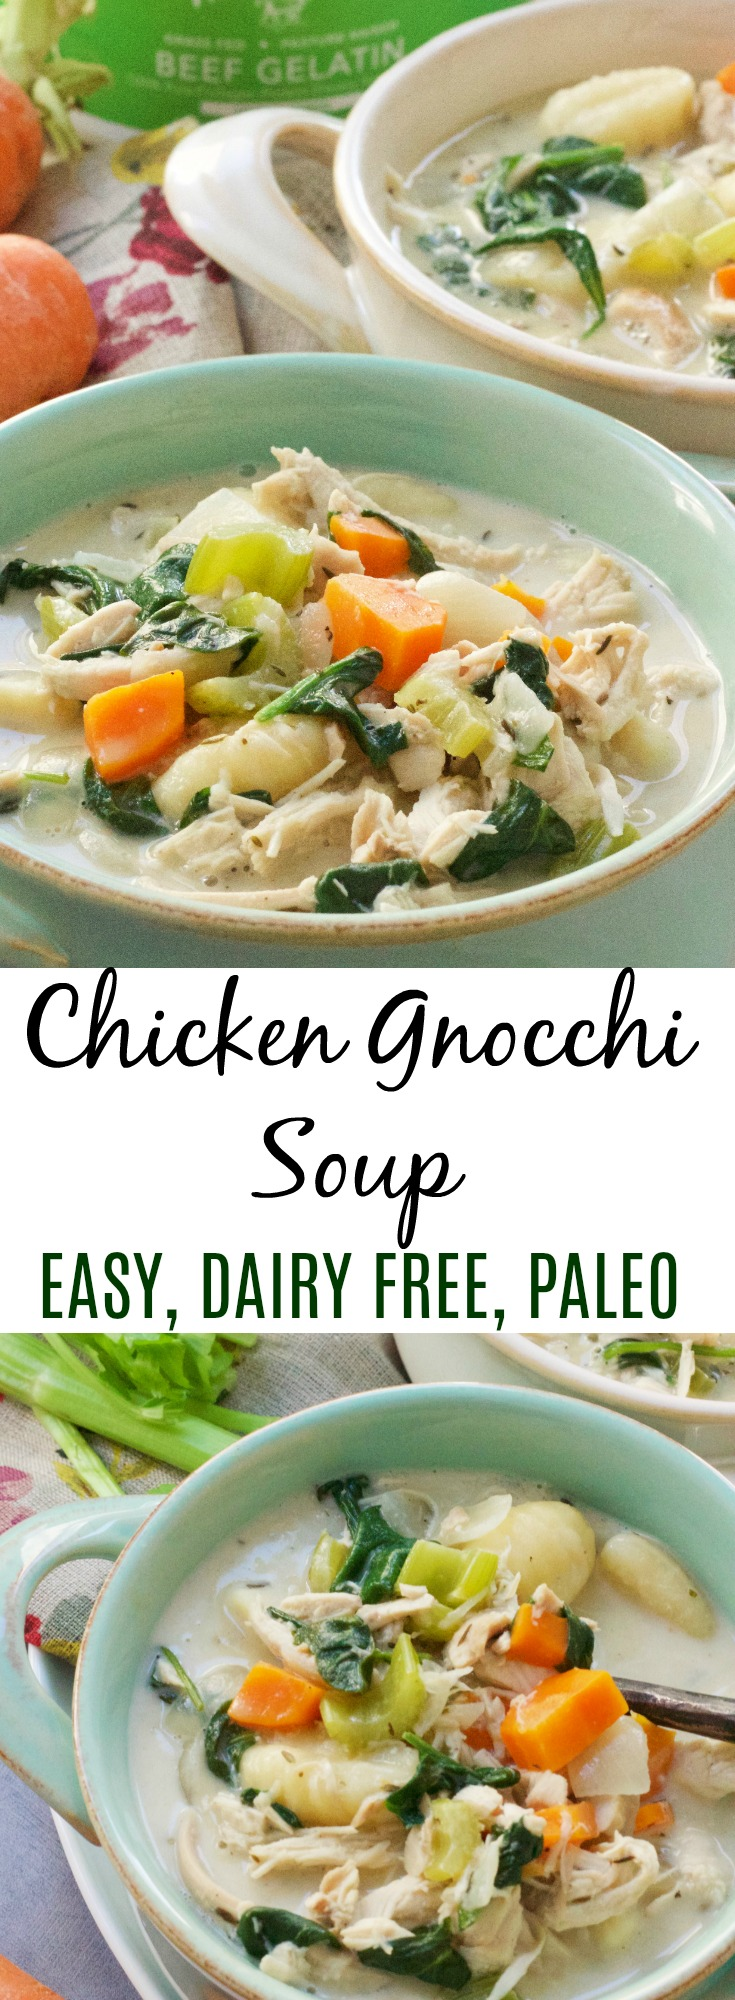 Easy One Pot Chicken Gnocchi Soup is Quick and Paleo! A healthy version of a restaurant staple! #paleo #chickensoup #gnocchi #paleosoup